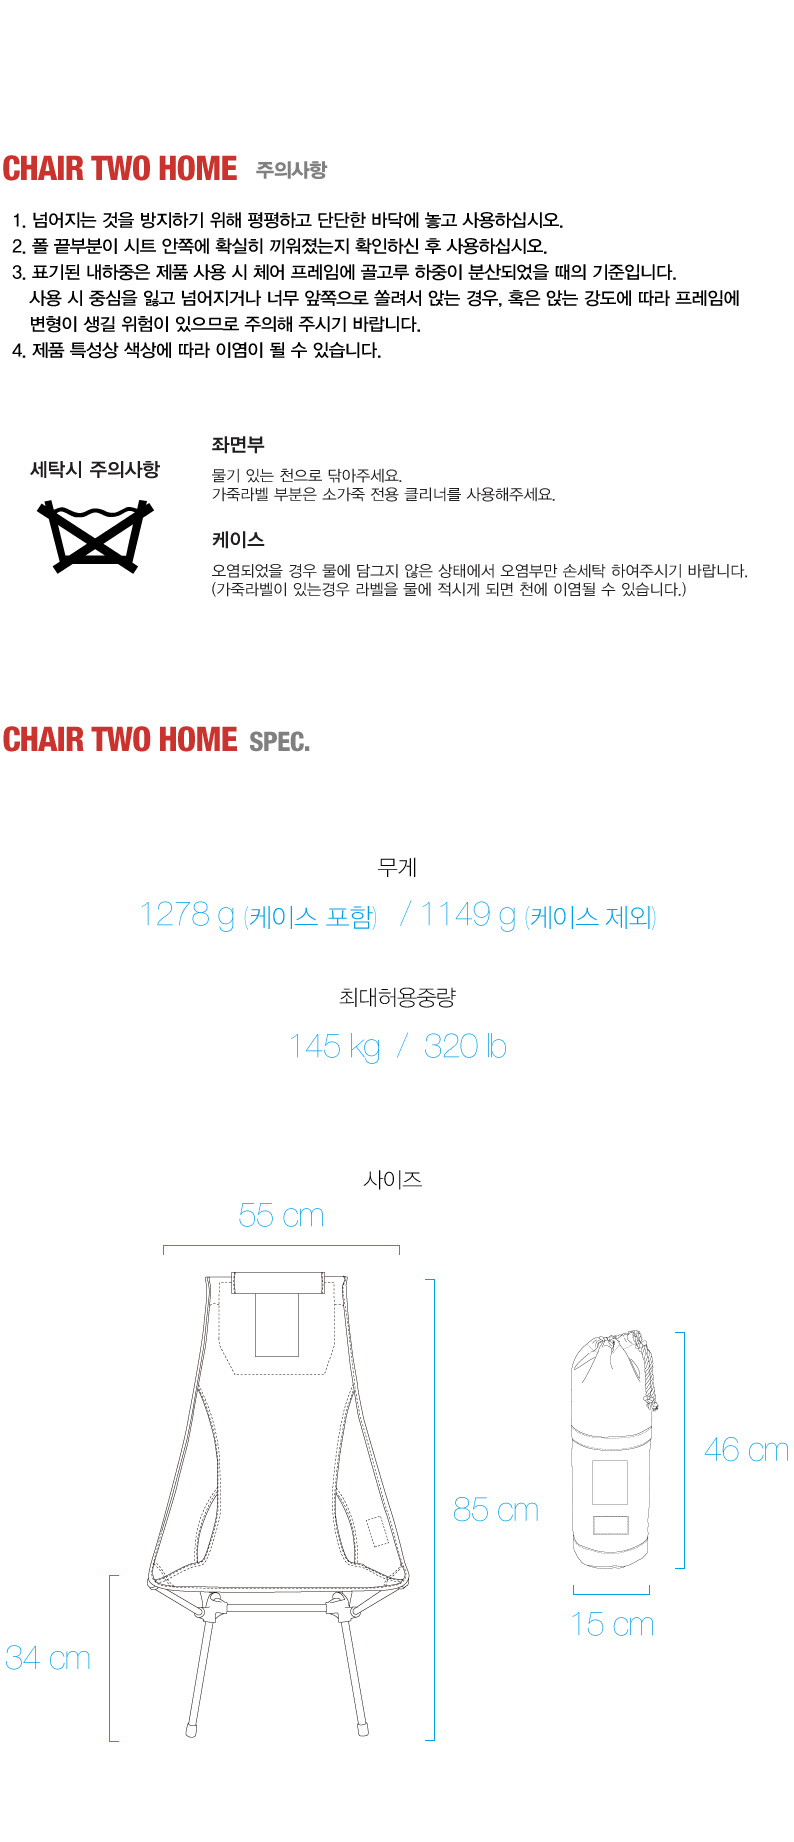 20170609-chair-two-home-spec.jpg